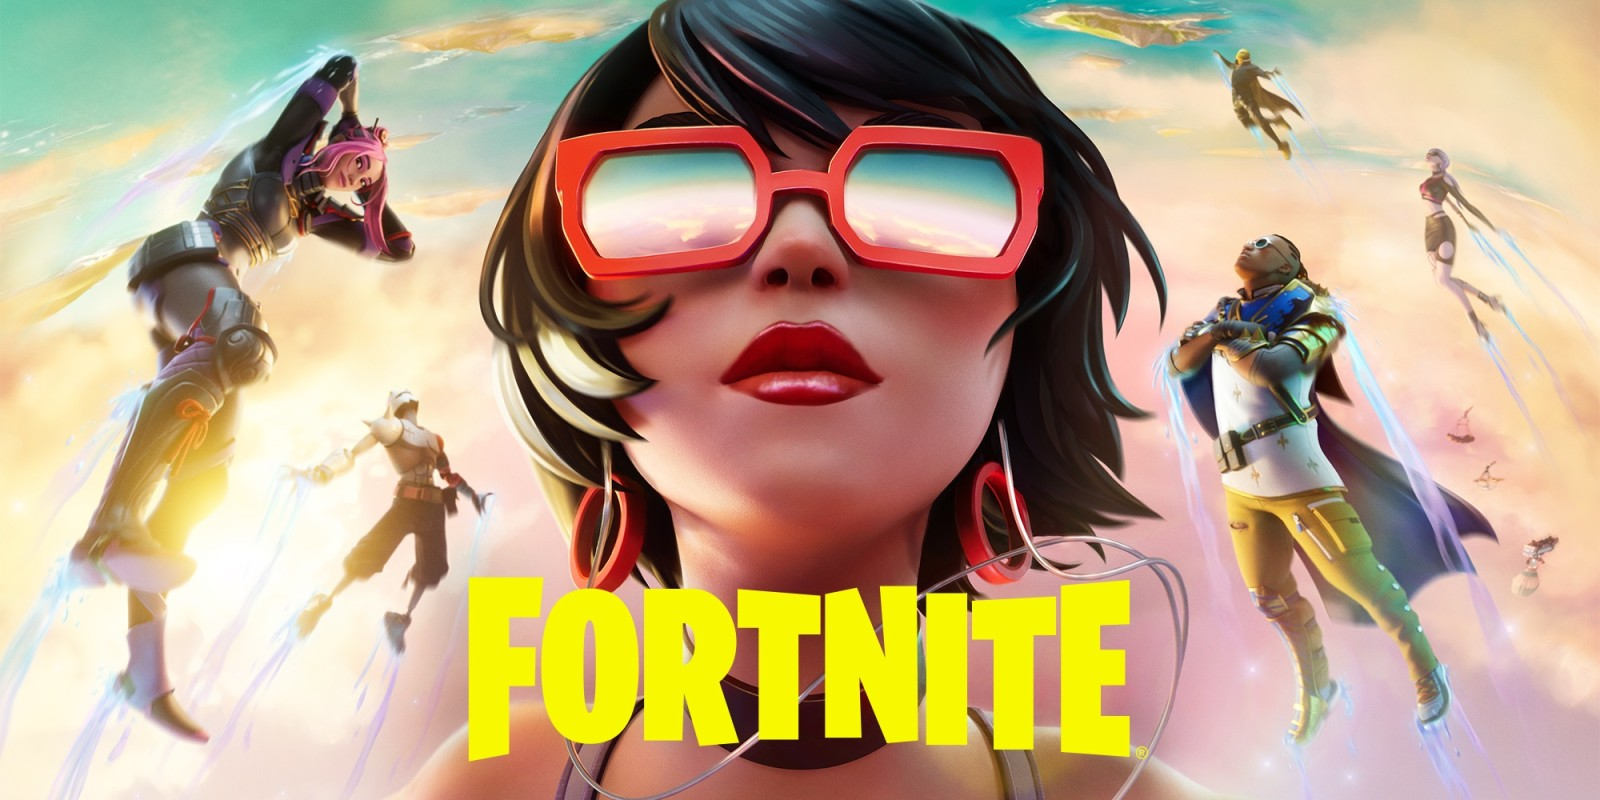 Iphone X Fornite Wallpapers Fortnite Jeux 224 T 233 L 233 Charger Sur Nintendo Switch Jeux